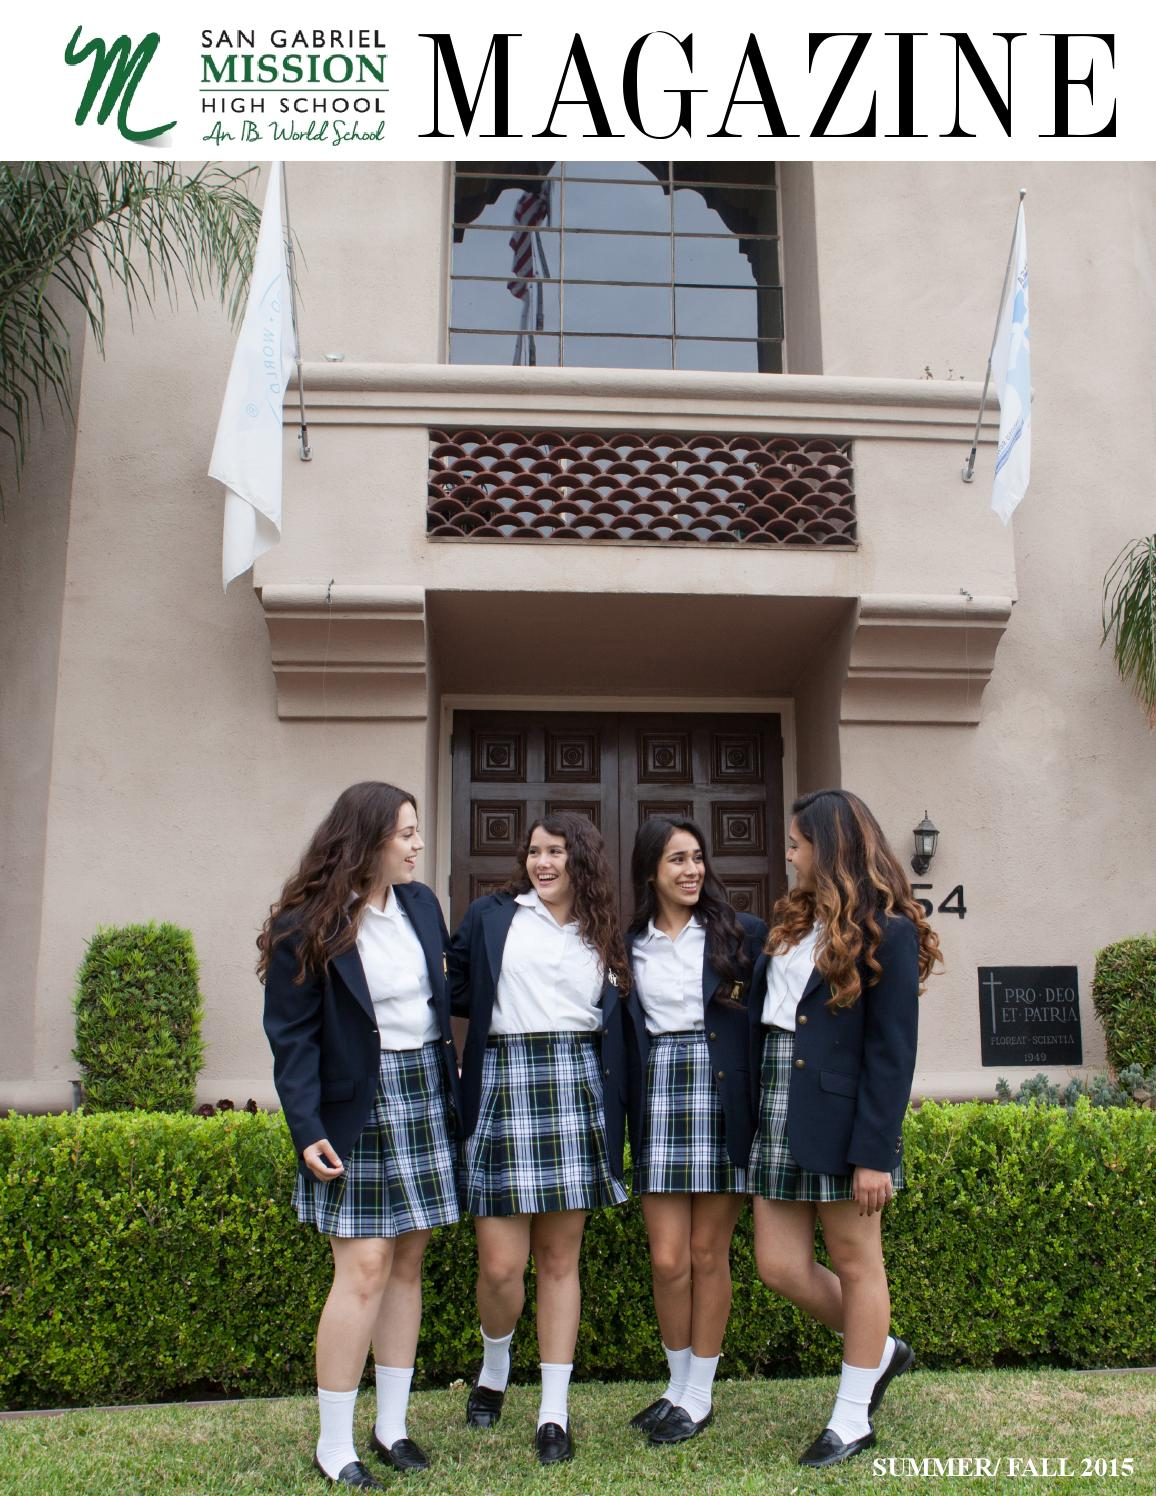 san gabriel single catholic girls San gabriel's best 100% free online dating site meet loads of available single women in san gabriel with mingle2's san gabriel dating services find a girlfriend or lover in san gabriel, or just have fun flirting online with san gabriel single girls.